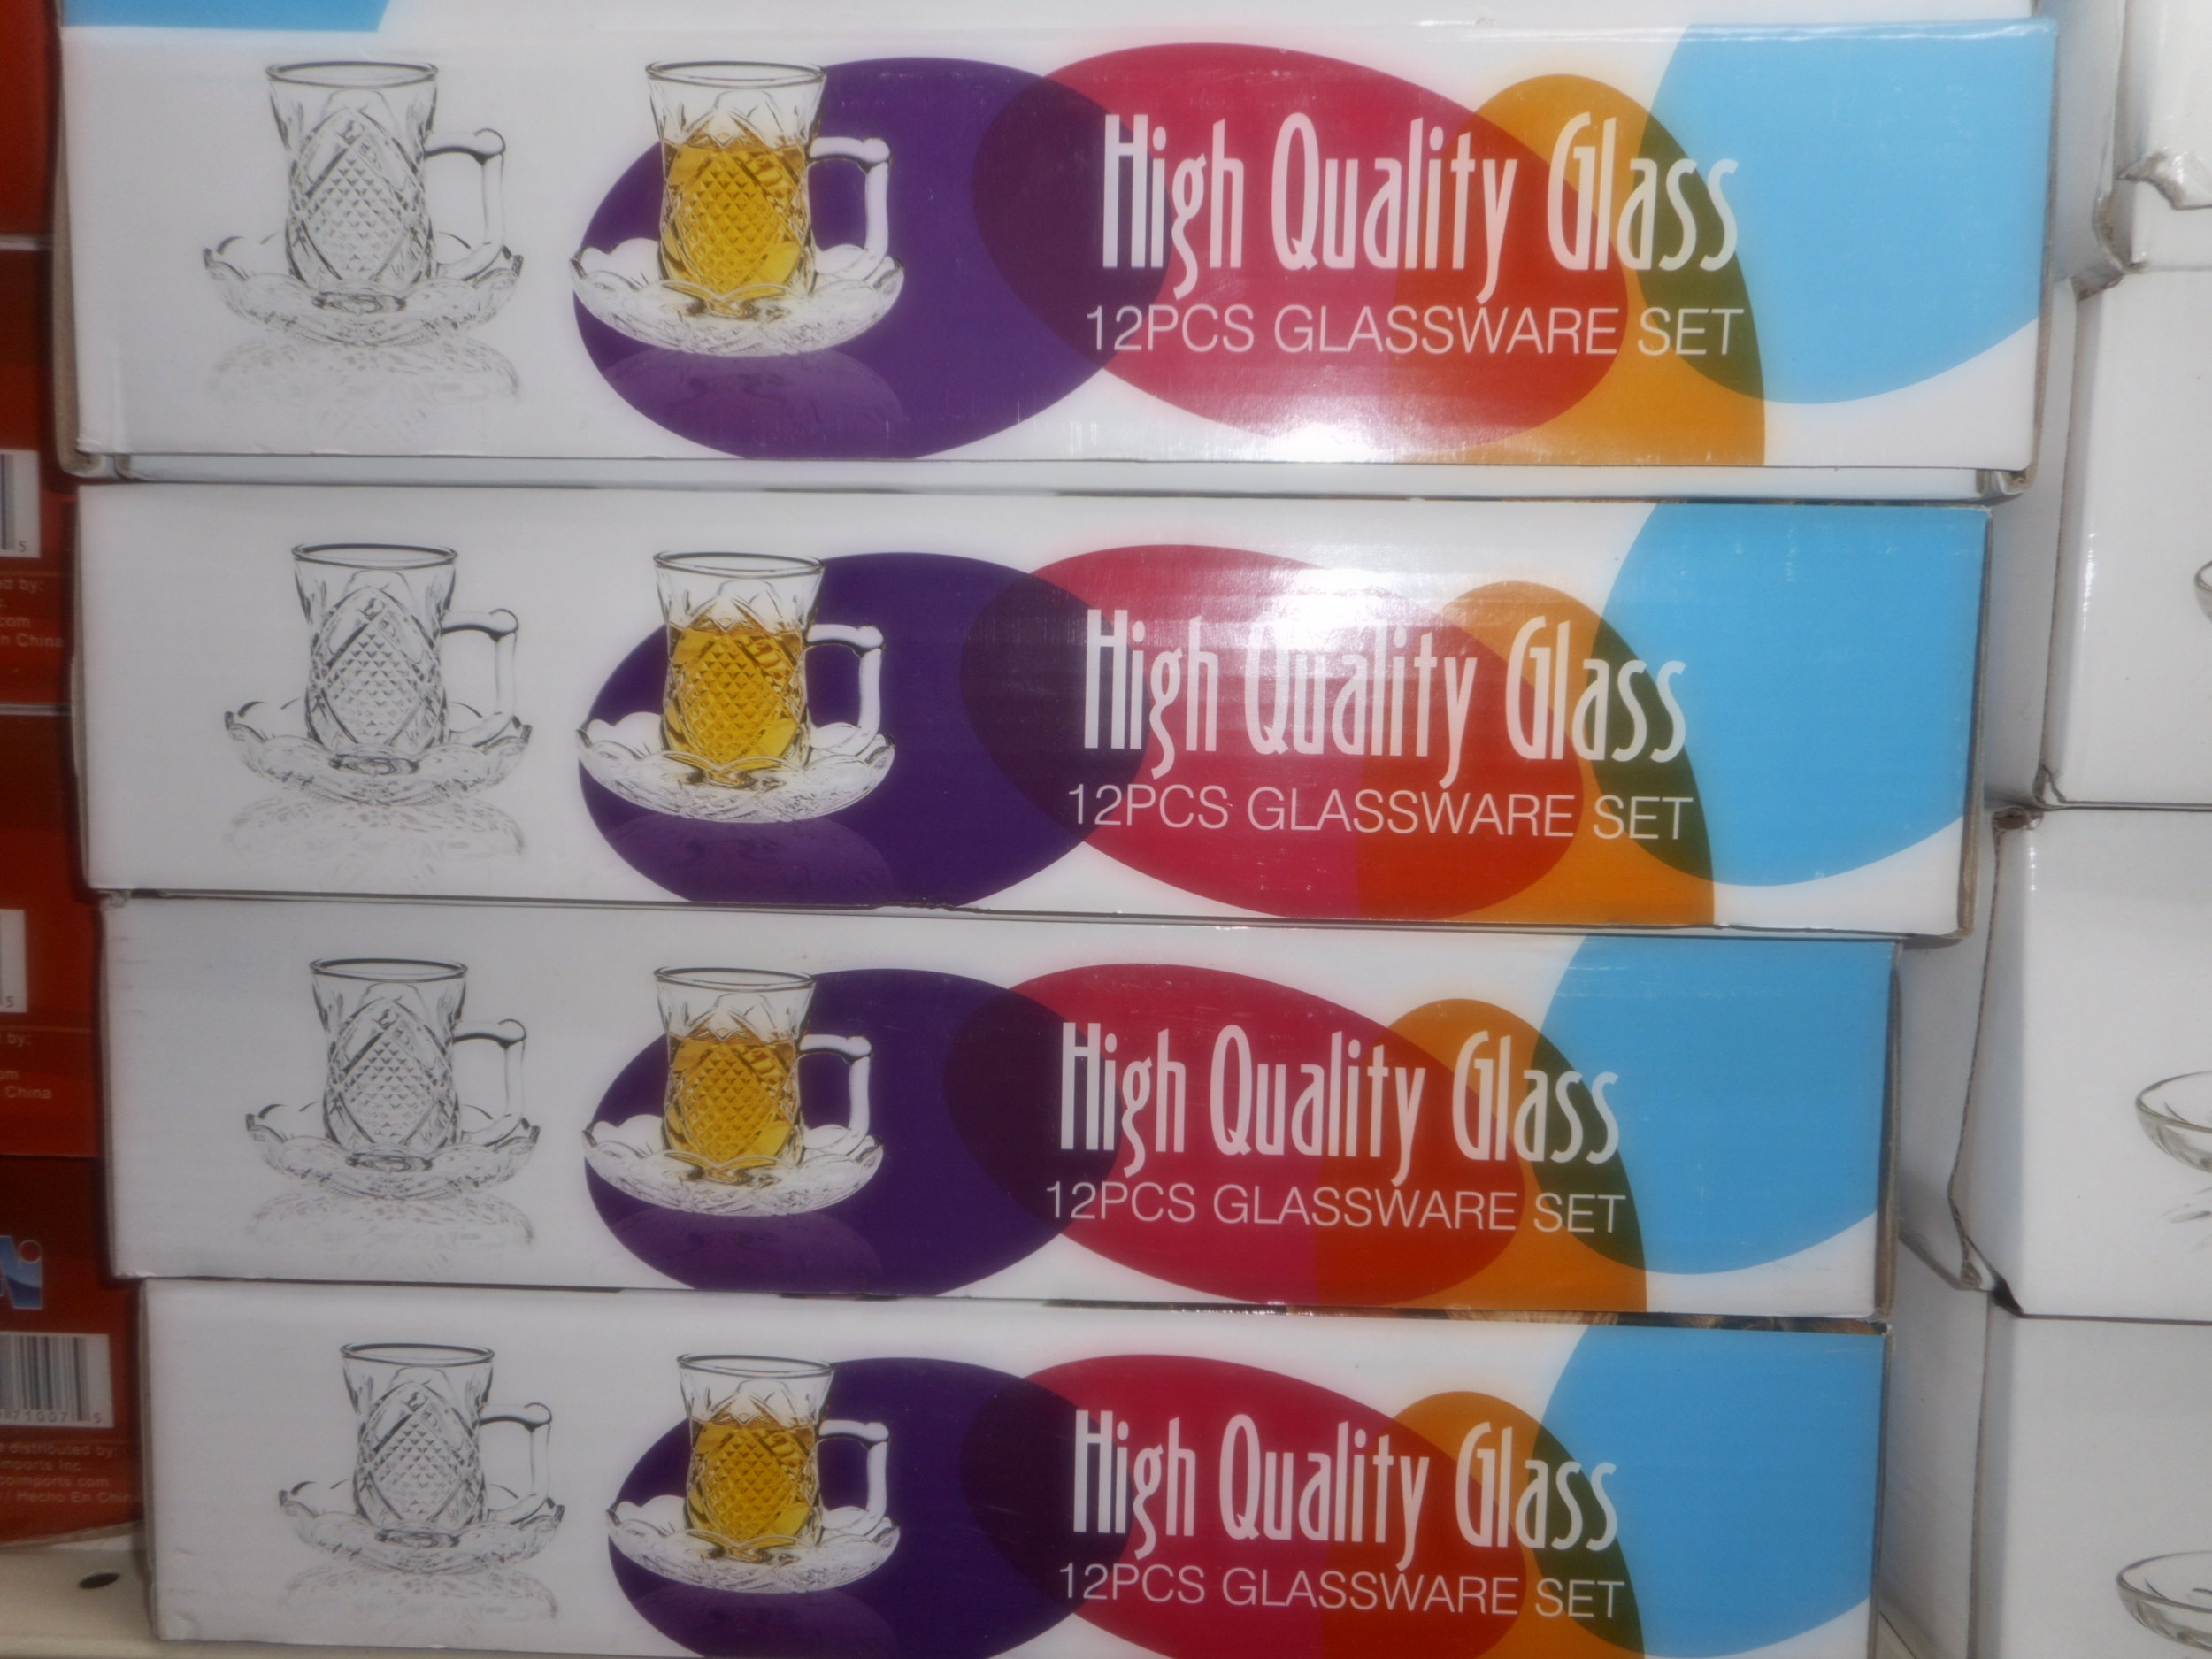 Glass-Tea-Set-Pak-Halal-Mediterranean- Grocery-Store-12259-W-87th-St-Pkwy-Lenexa-KS-66215.JPG